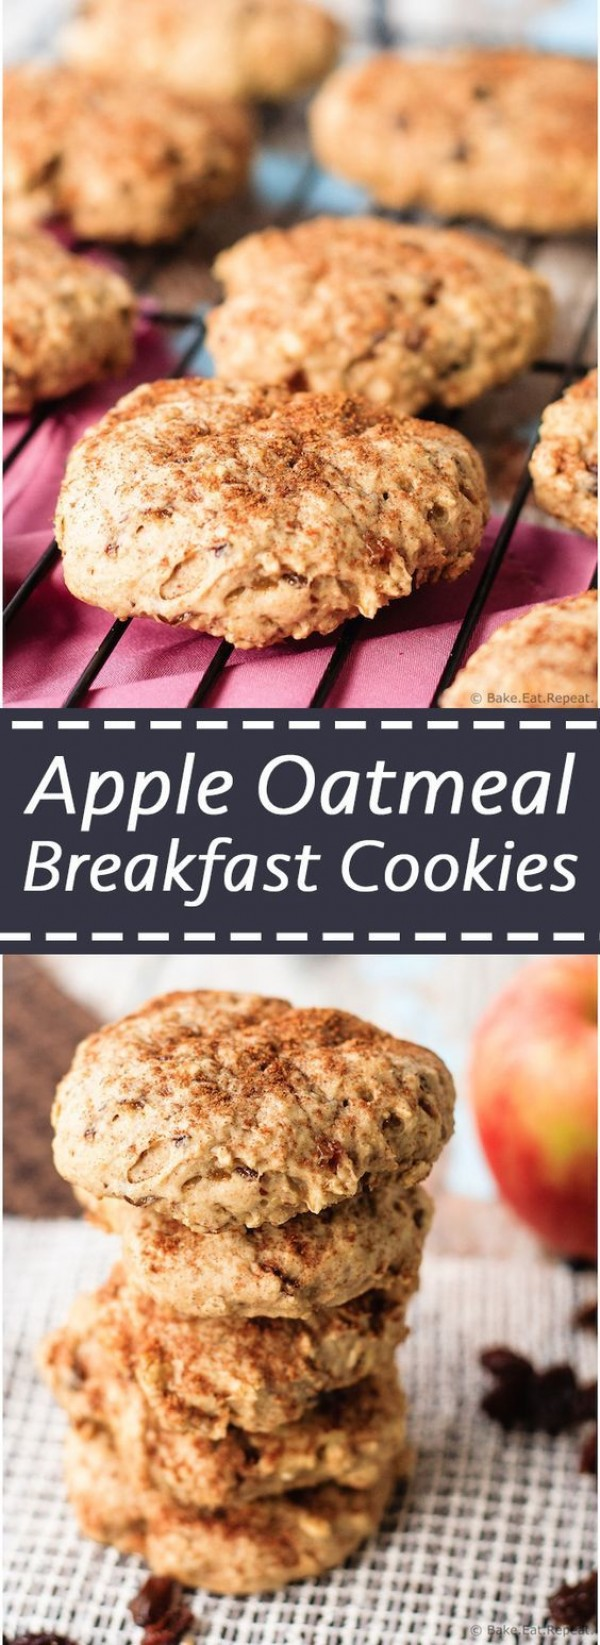 Check out this recipe for breakfast apple oatmeal cookies. Yummy! #RecipeIdeas @recipes_to_go